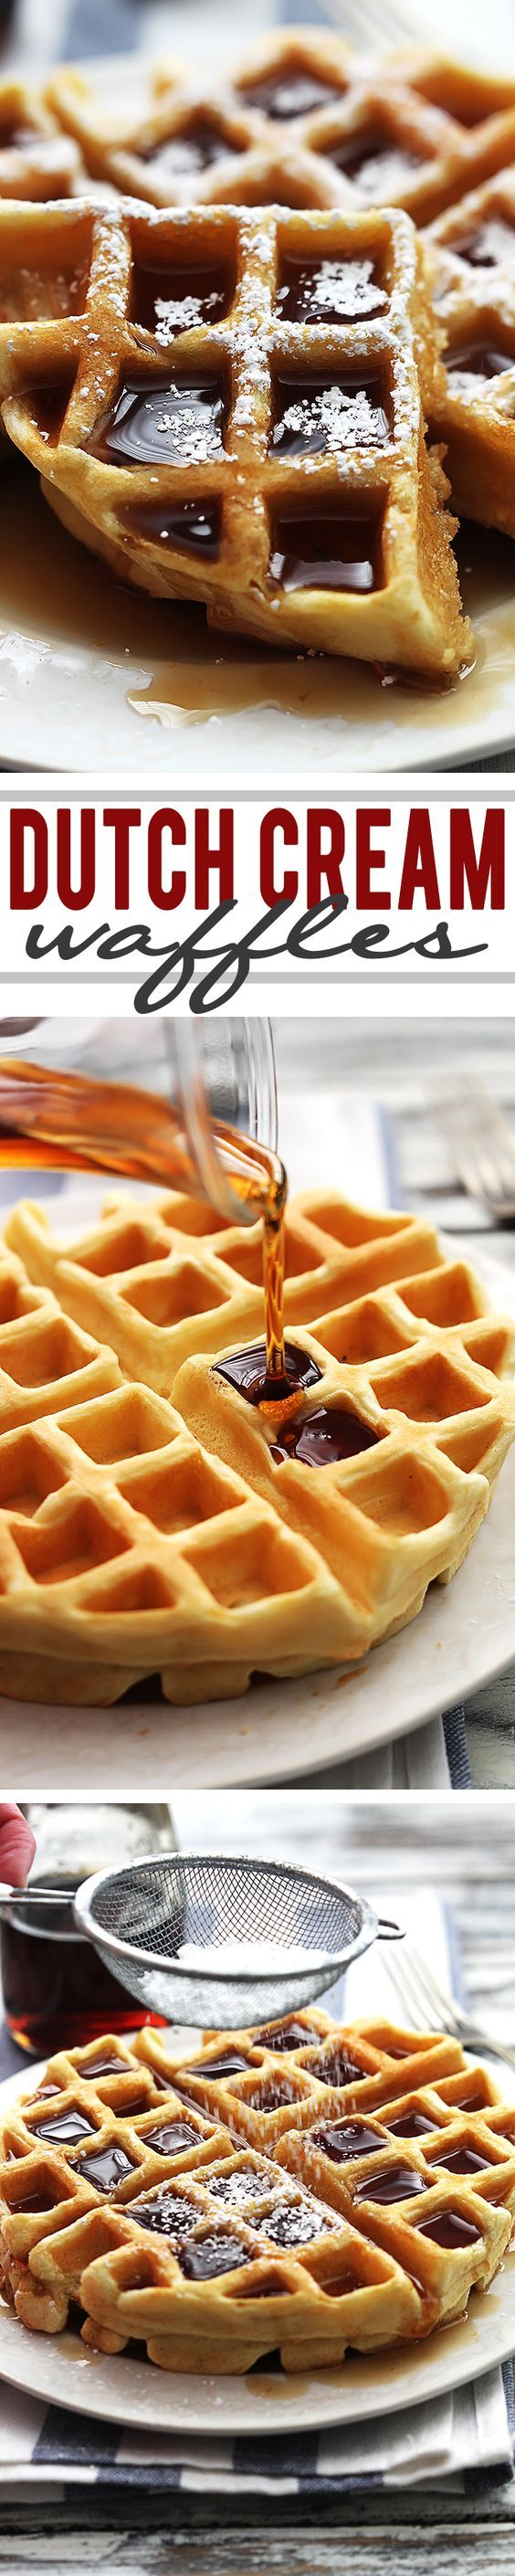 Super fluffy and rich dutch cream waffles – JUST 4 INGREDIENTS!: